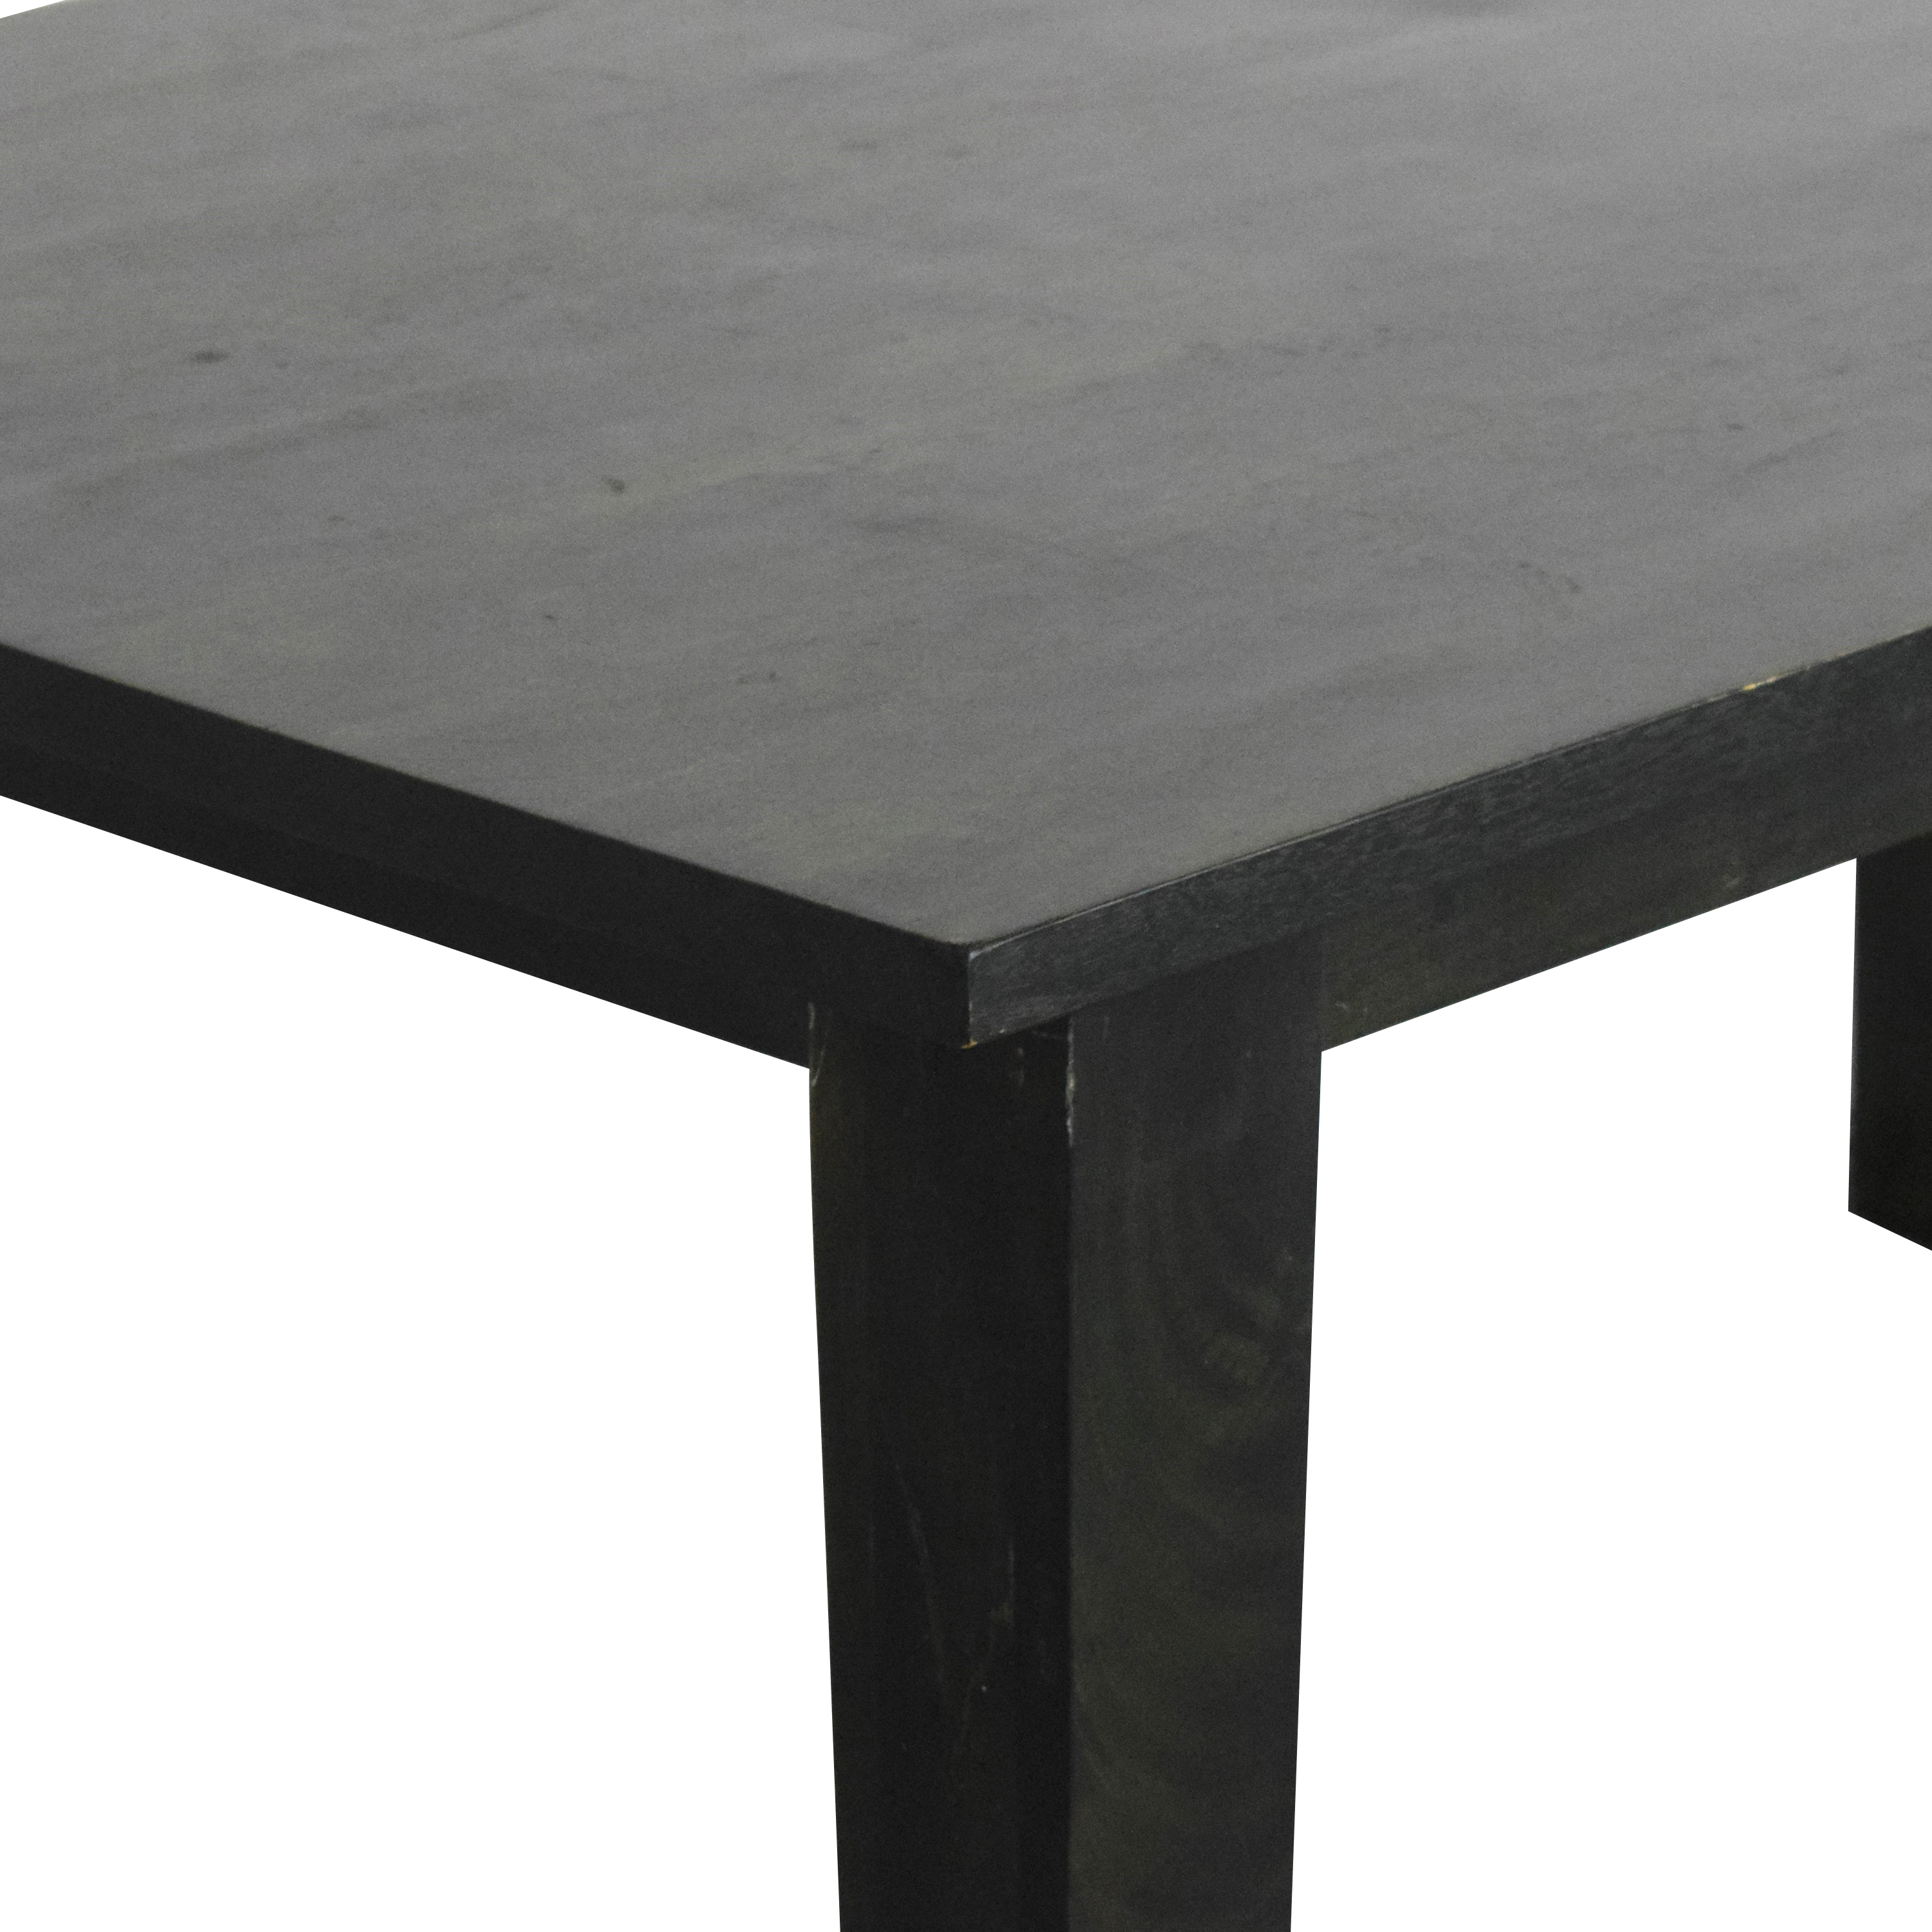 Crate & Barrel Basque Dining Table / Dinner Tables